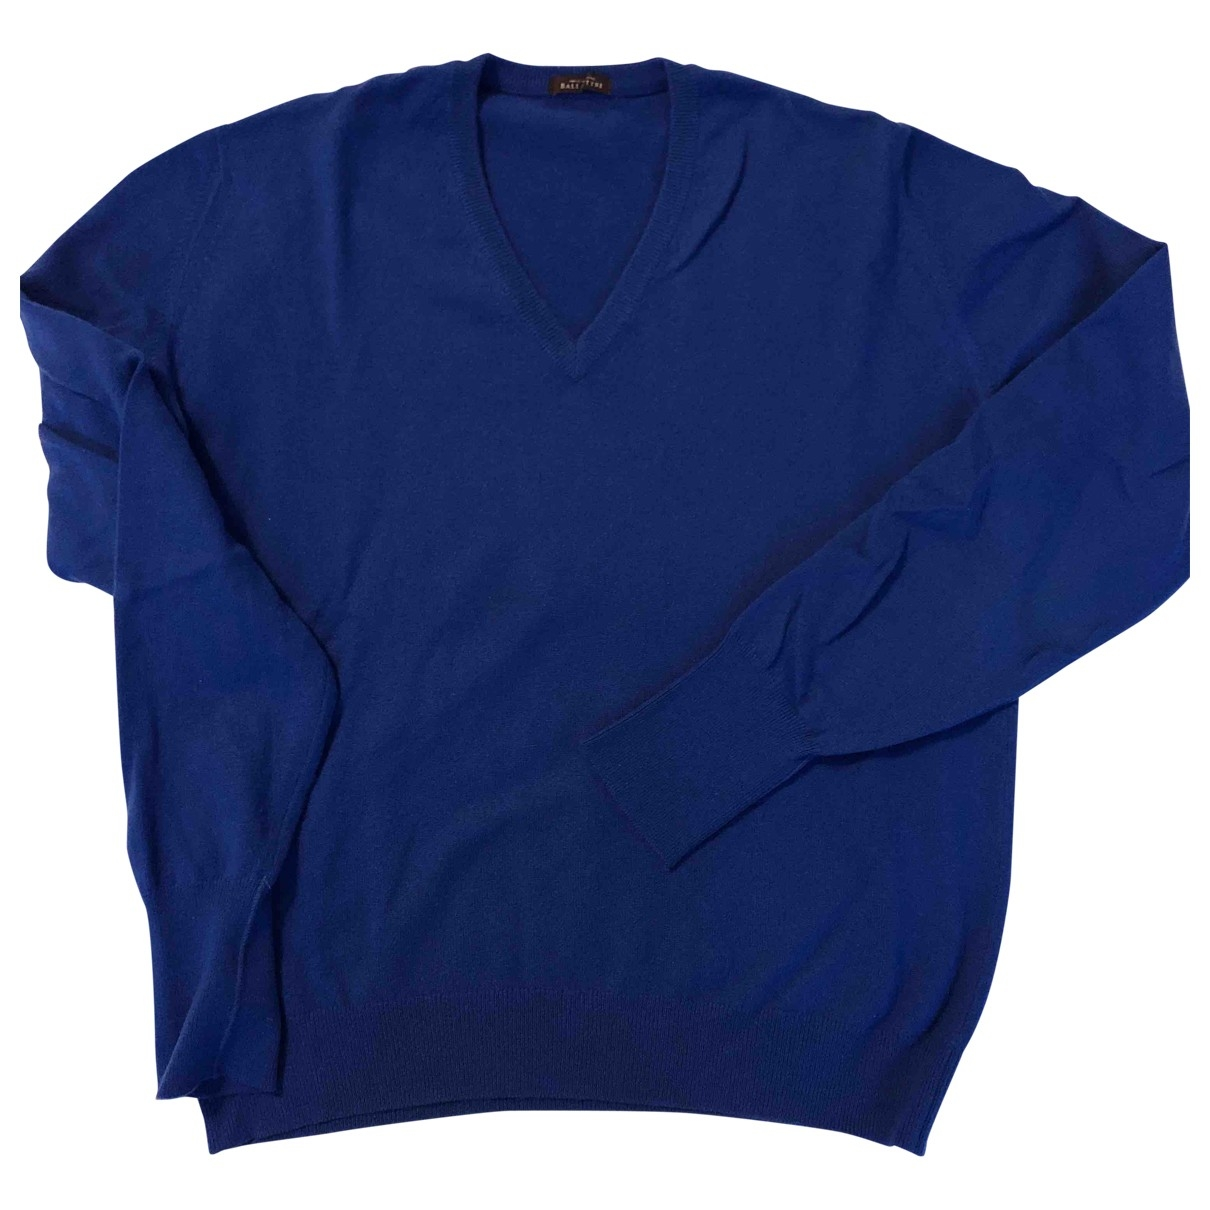 Ballantyne \N Blue Cashmere Knitwear & Sweatshirts for Men 46 IT